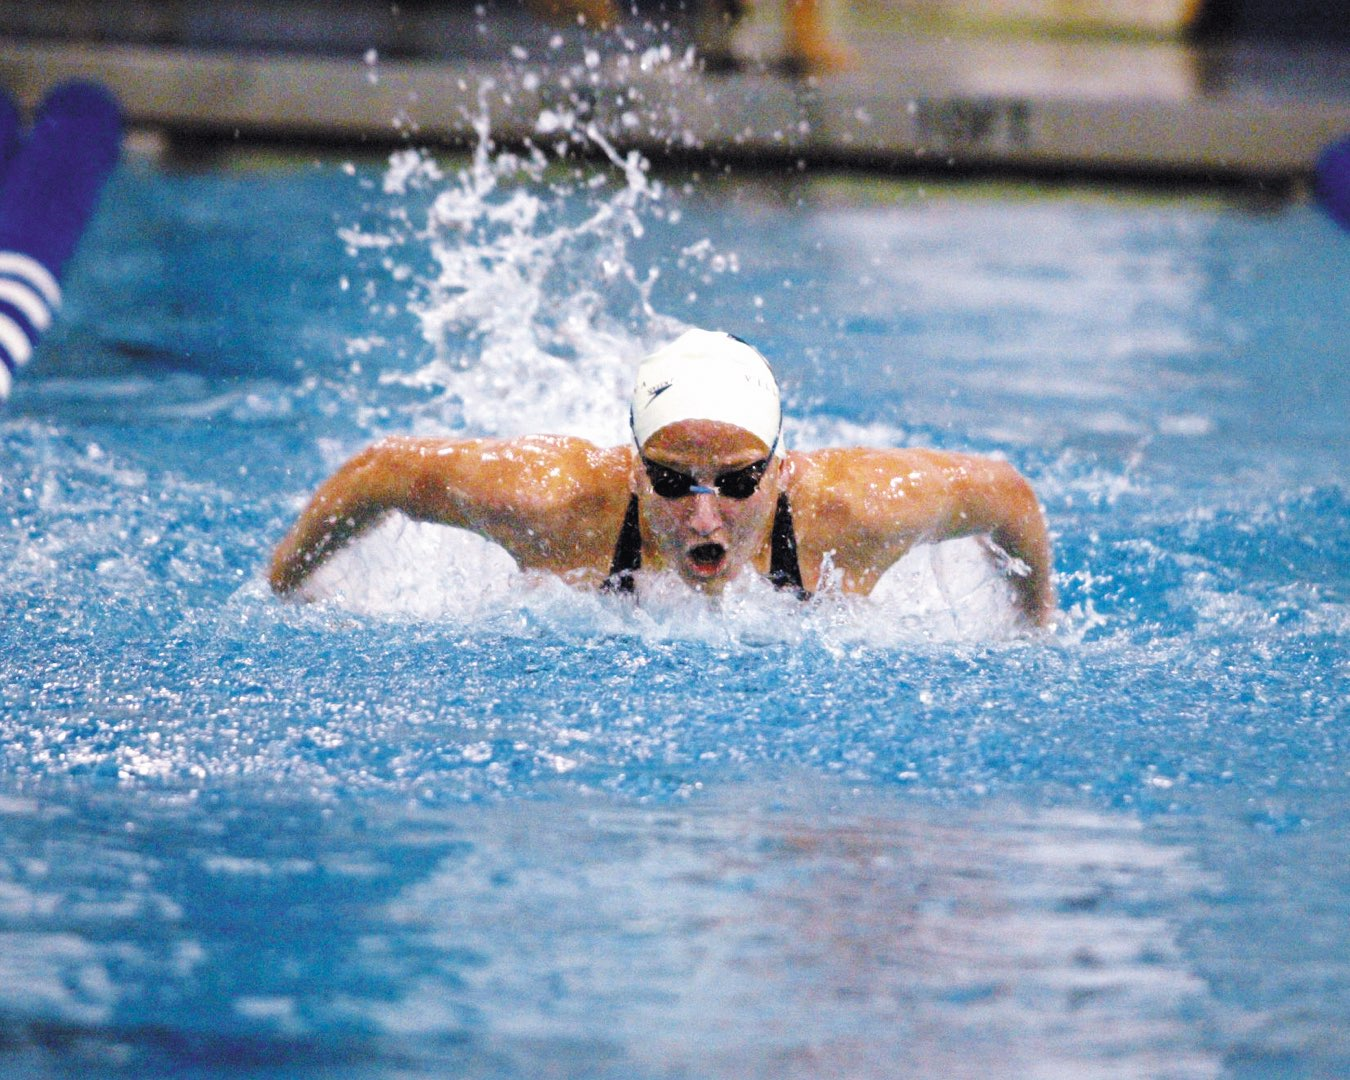 Water ripples behind a Villanova Women's Swimming and Diving team member in her cap and goggles, as she speeds down the lane